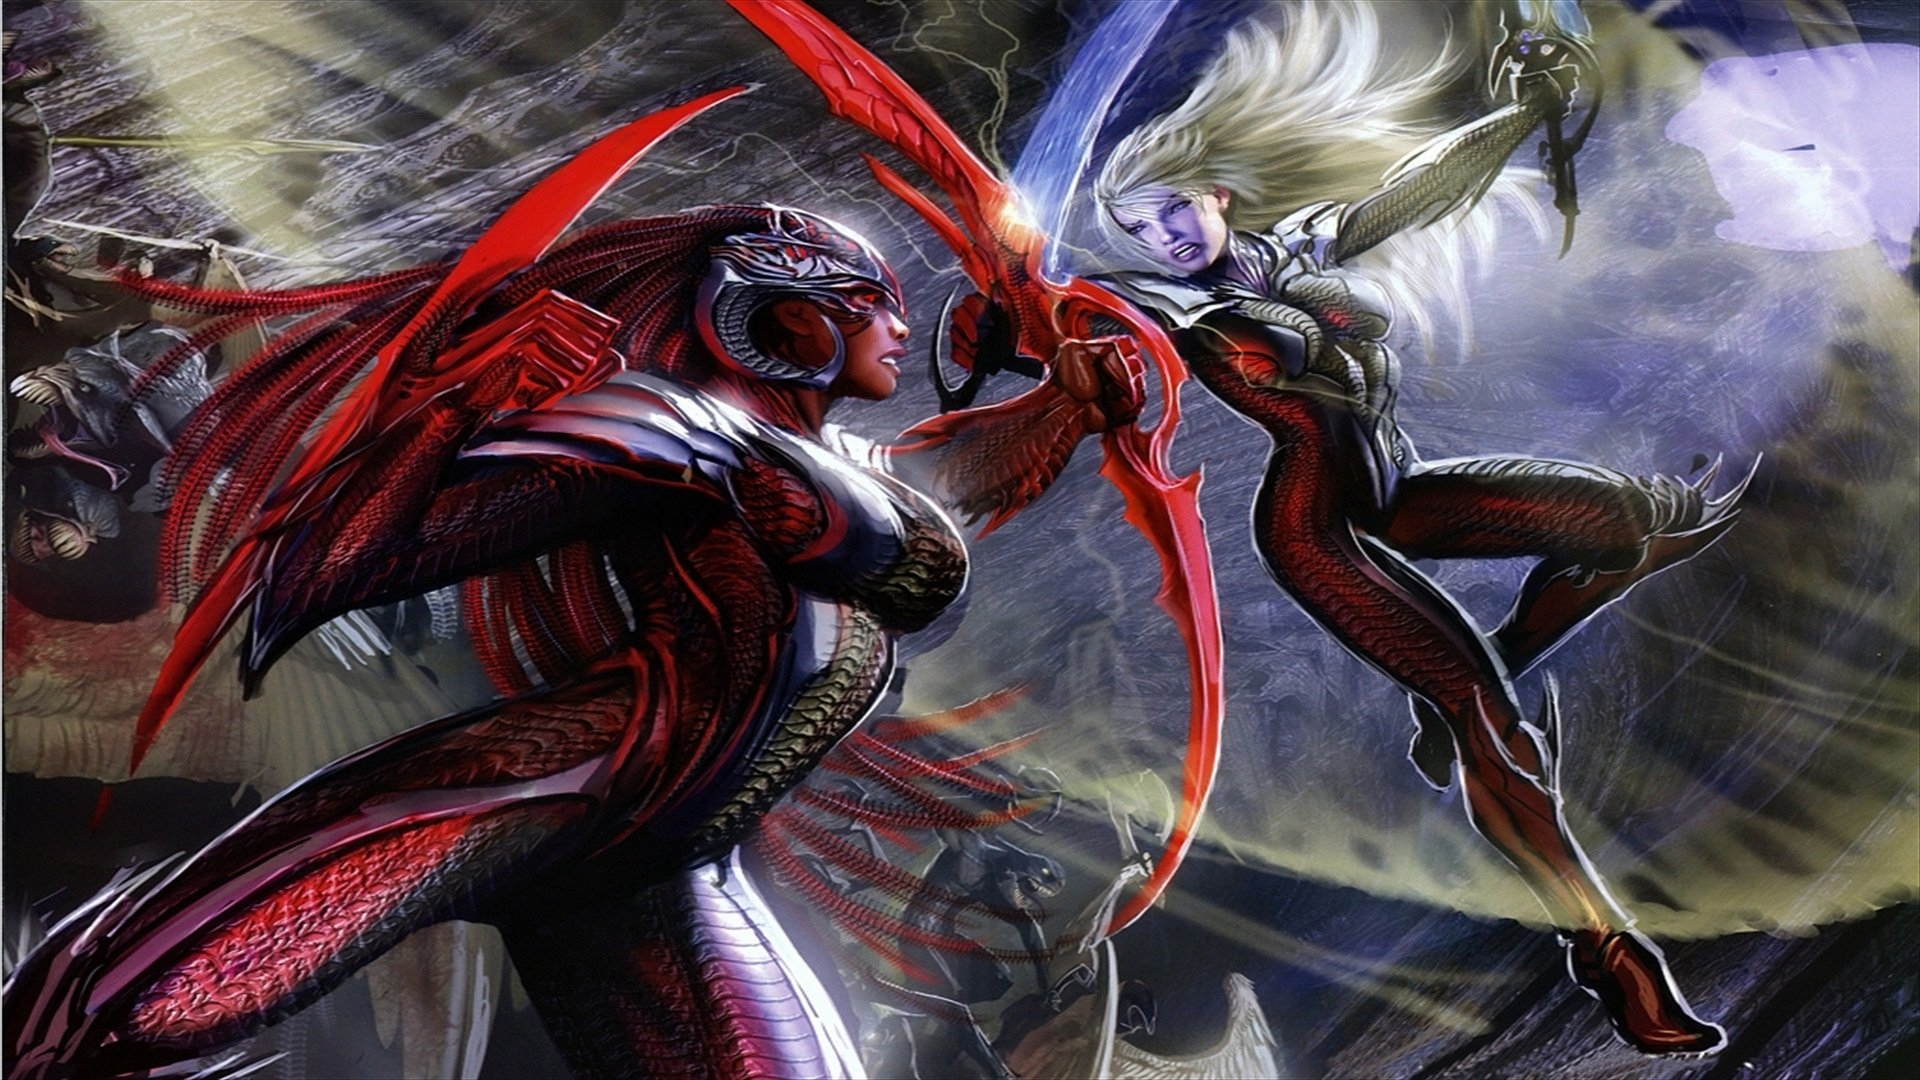 Comics - Witchblade  Witch Fight Dark Latex Gothic Wallpaper